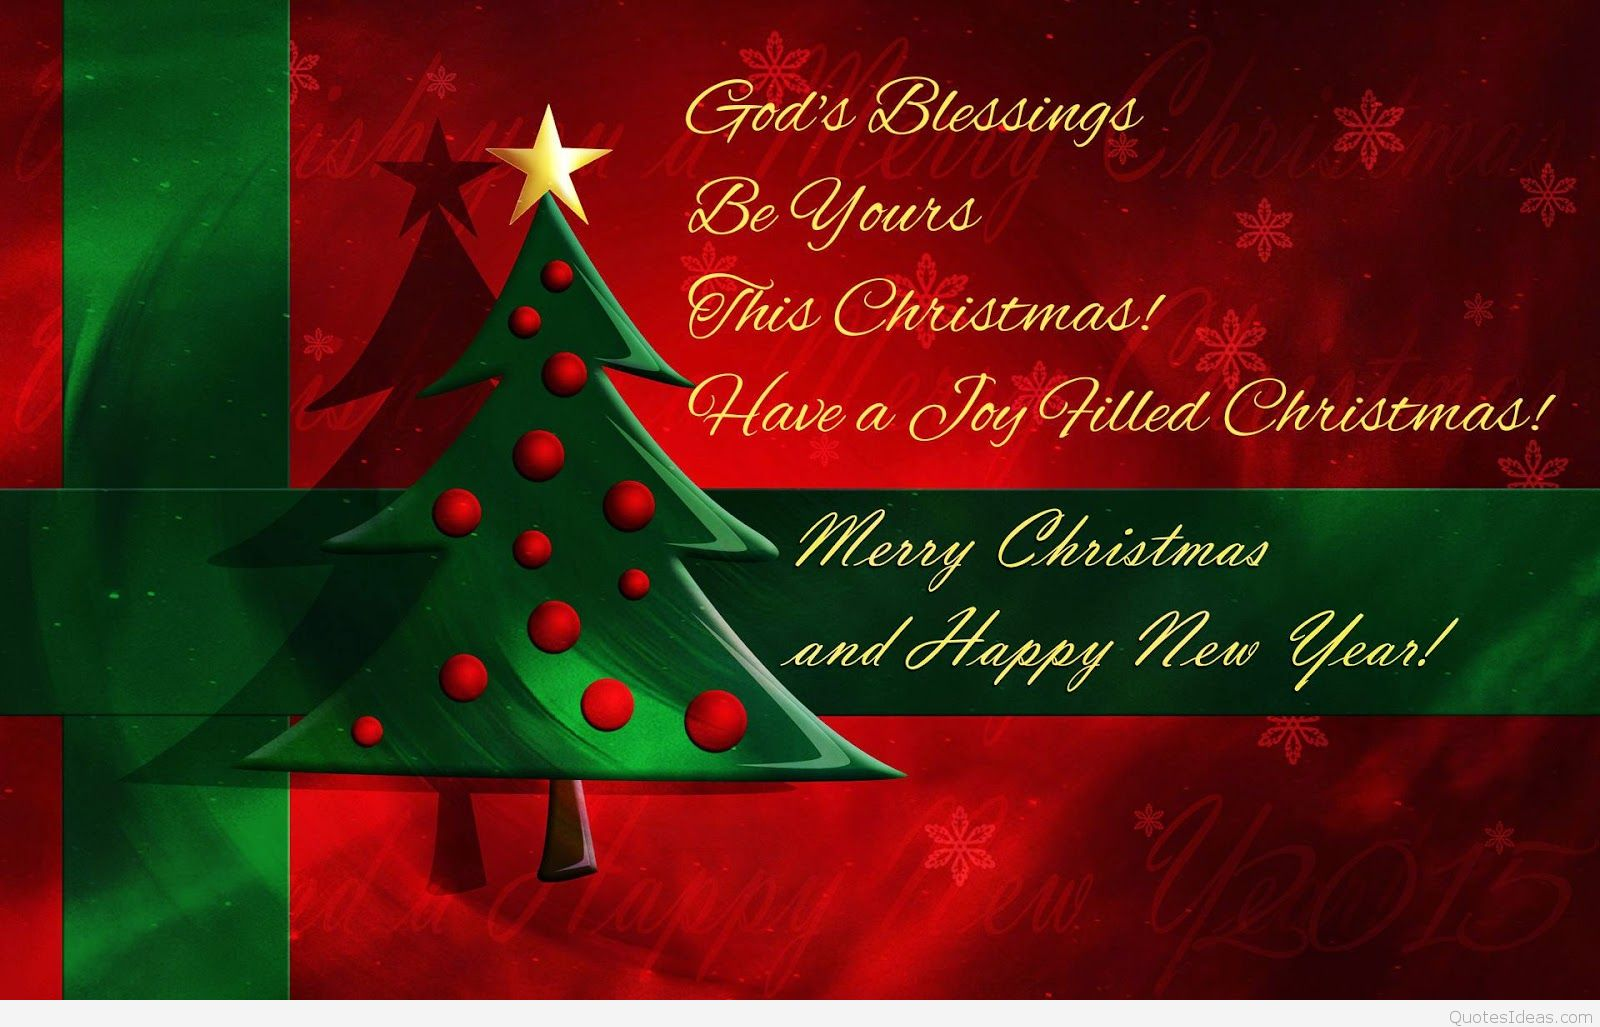 merry christmas quotes for cards ltcl2mhh2